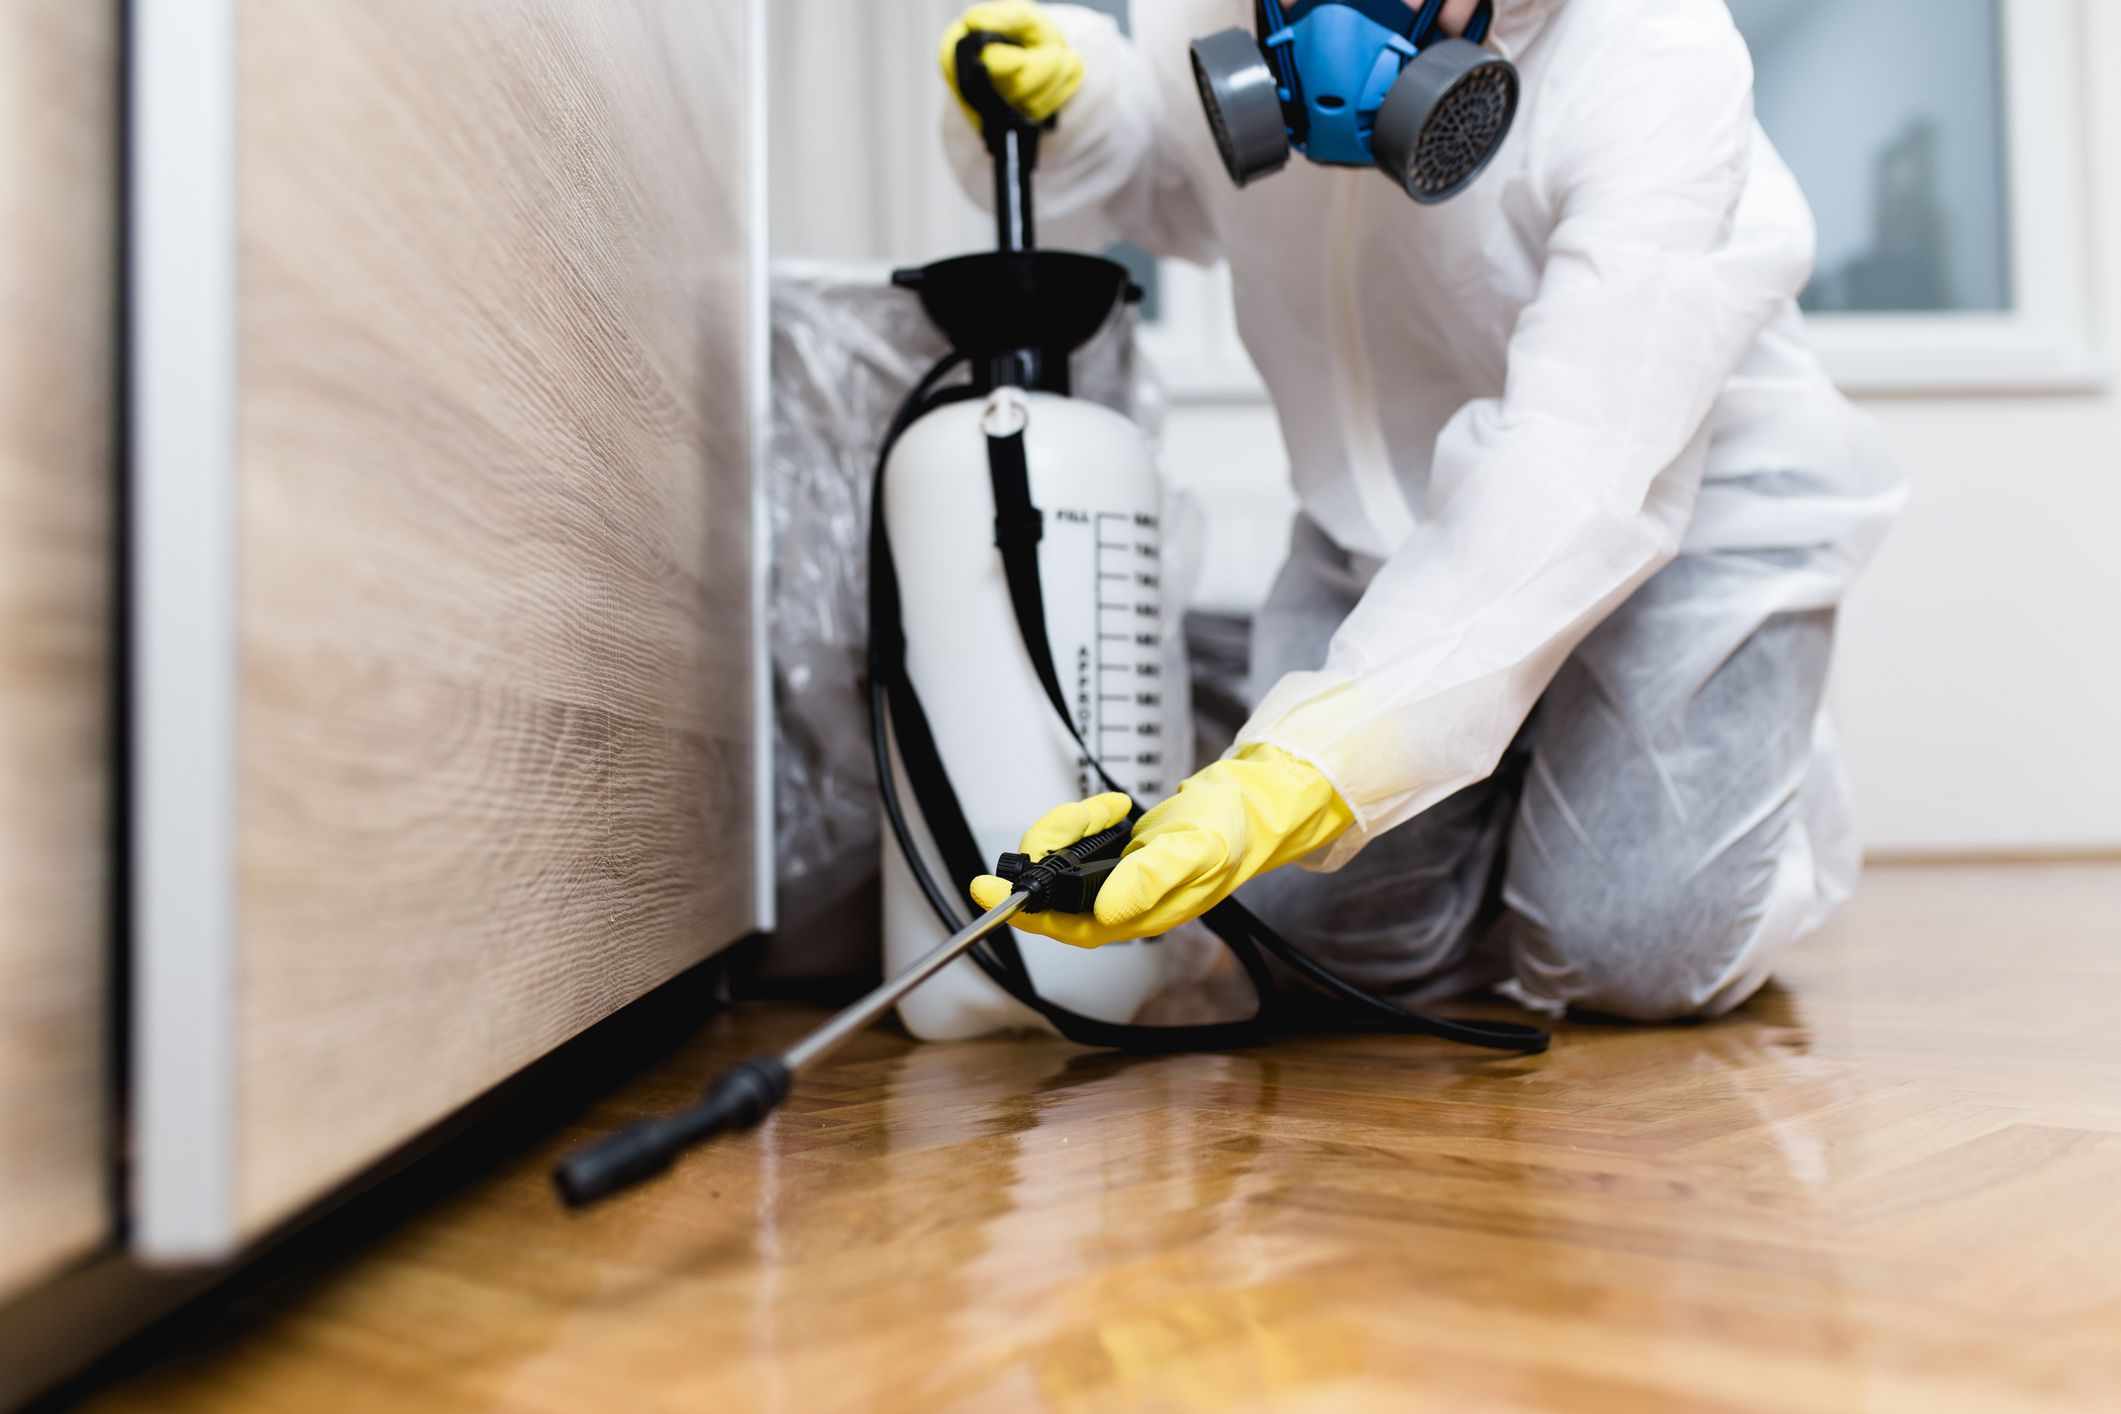 The Best Pest Control Services of 2021